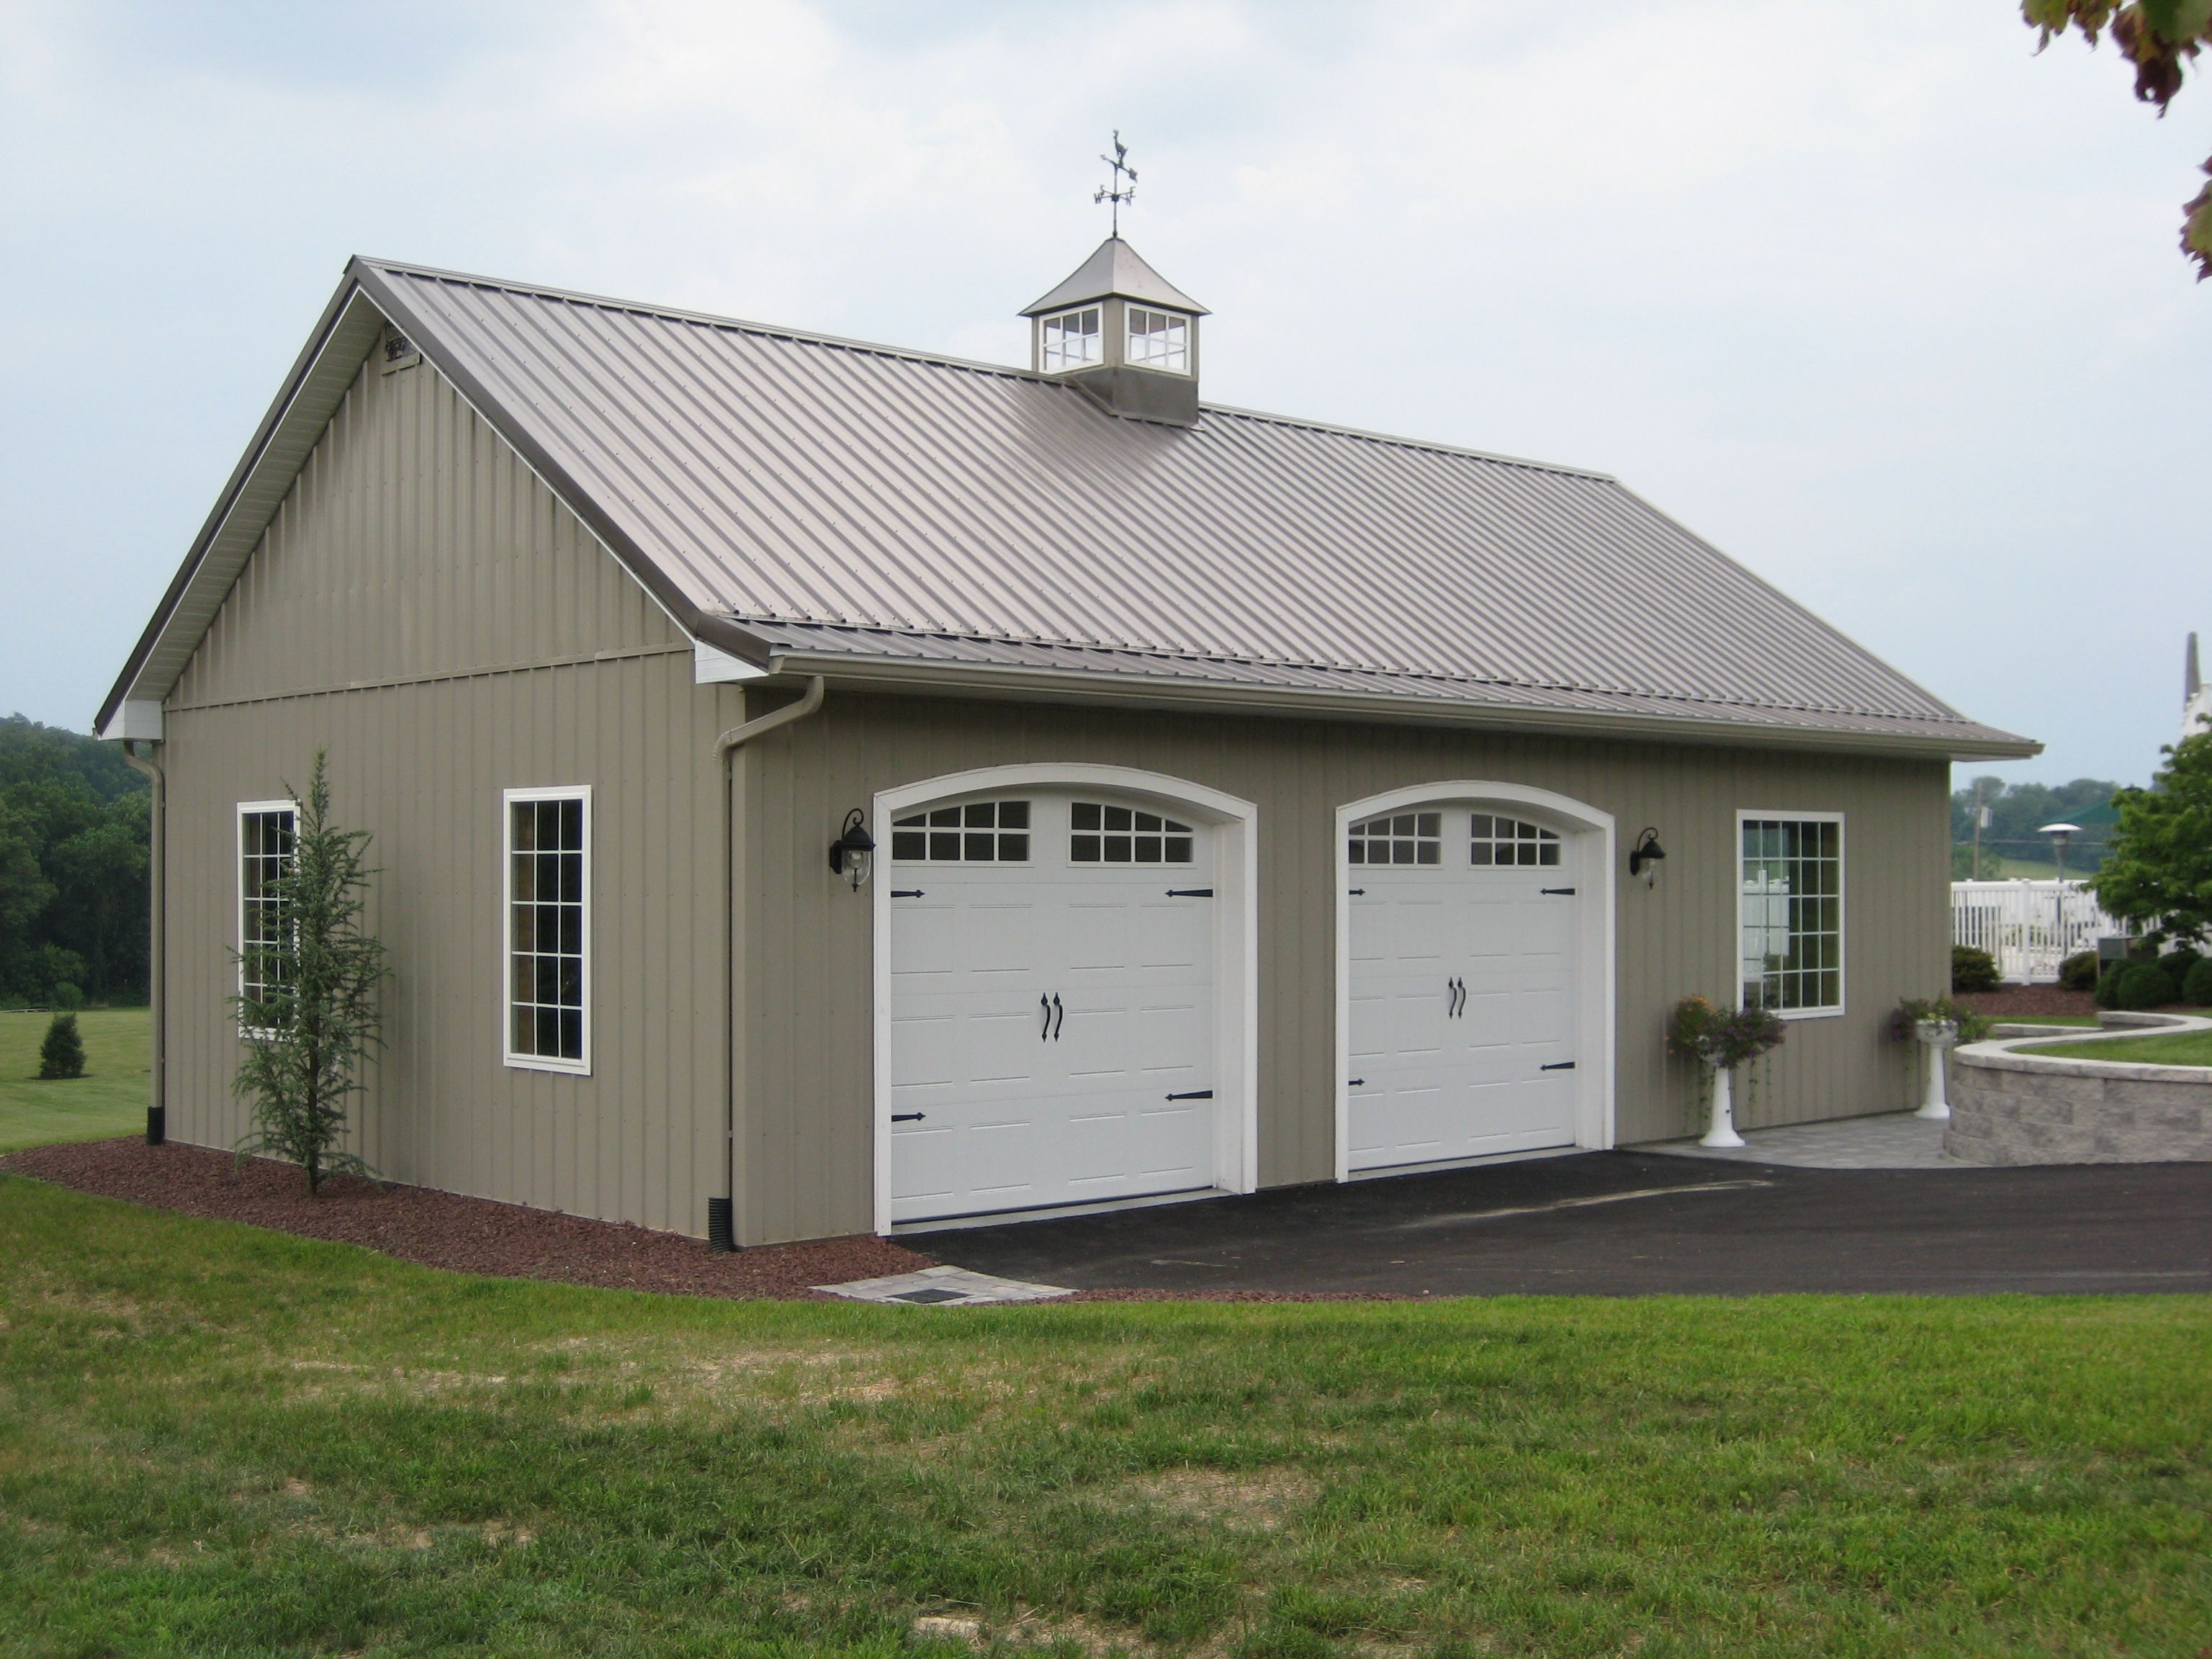 Best 25 pole barn garage ideas on pinterest pole barns for Pole barn home plans with garage